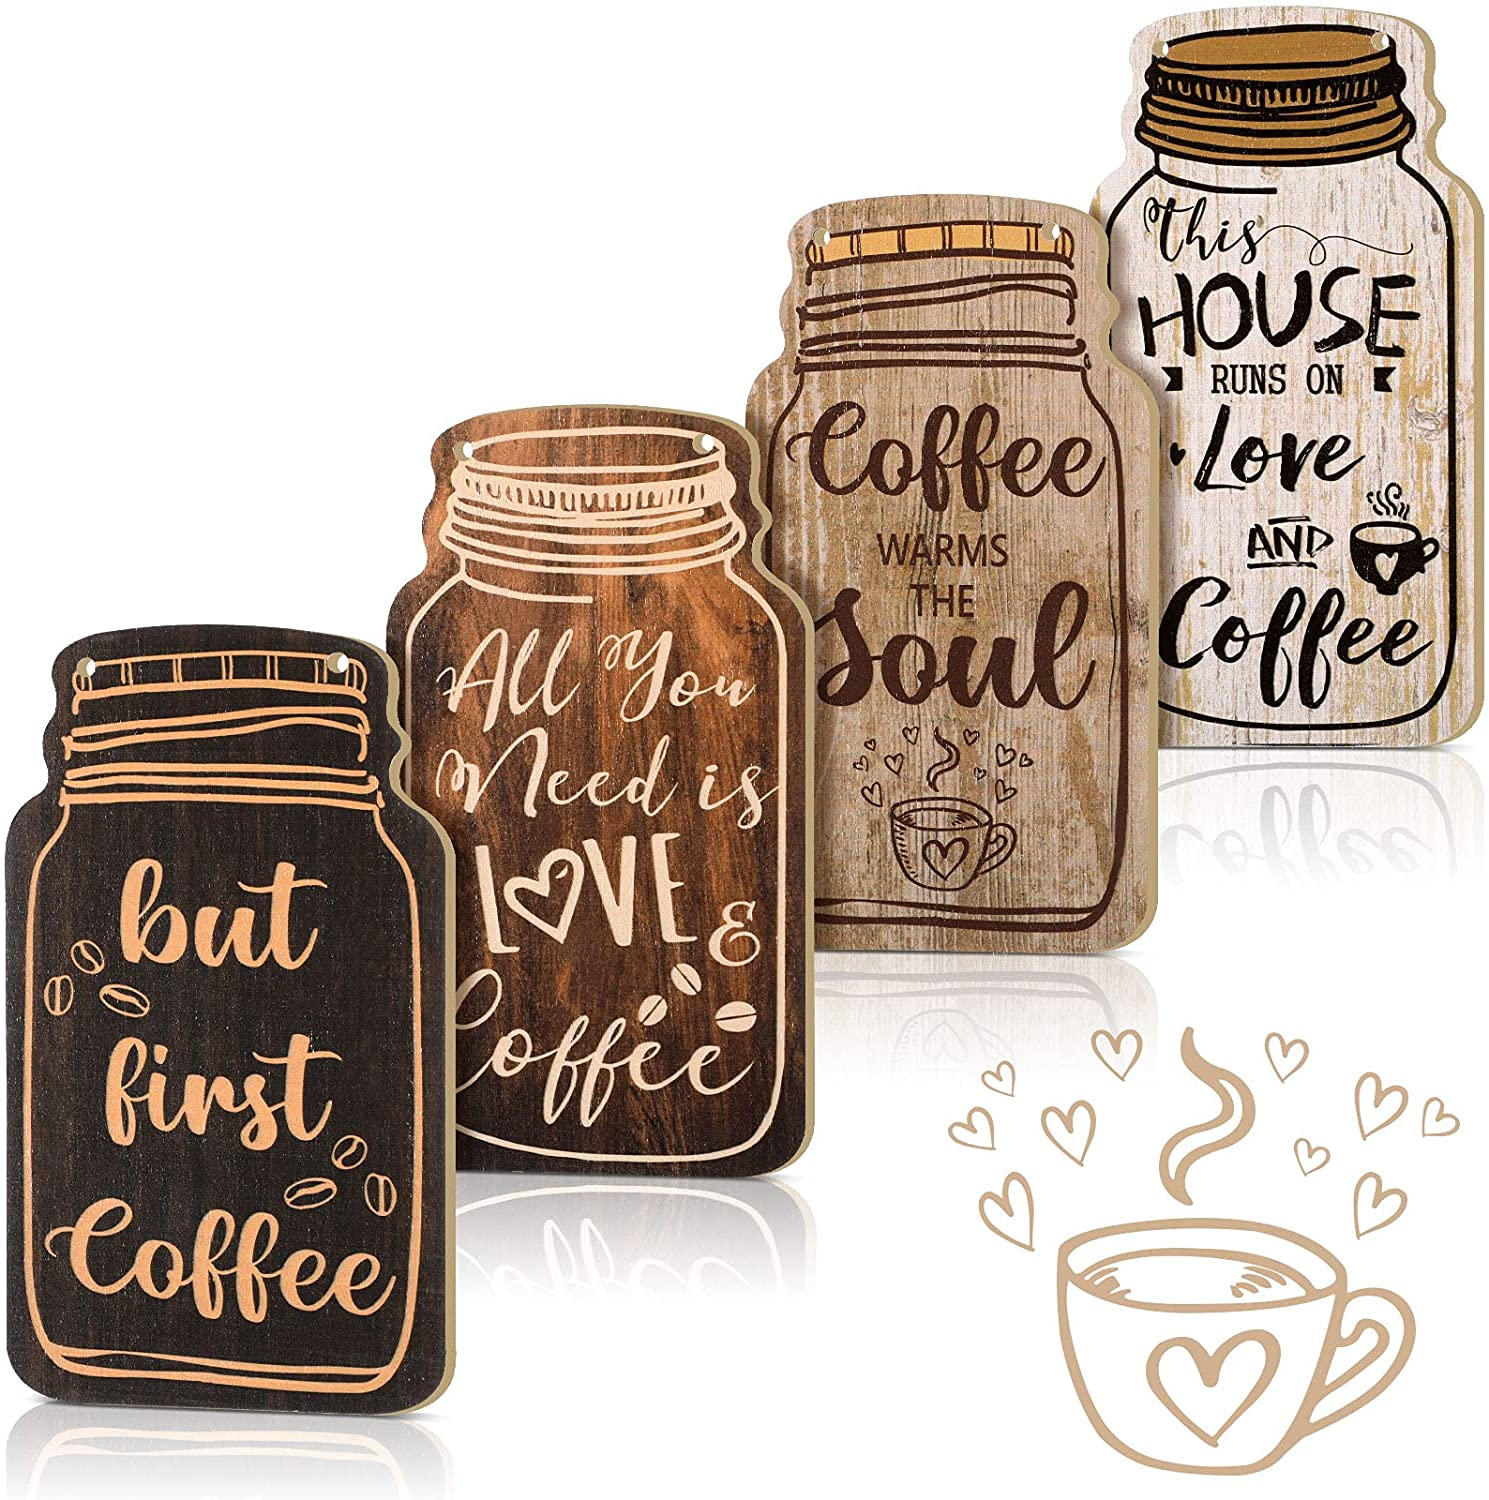 4 Pieces Decorative Wood Coffee Sign Rustic Wood Coffee Bar Sign Wall Hanging Plaque All You Need Is Love and Coffee Sign for Home Kitchen Decoration, 8.3 x 4.5 Inch